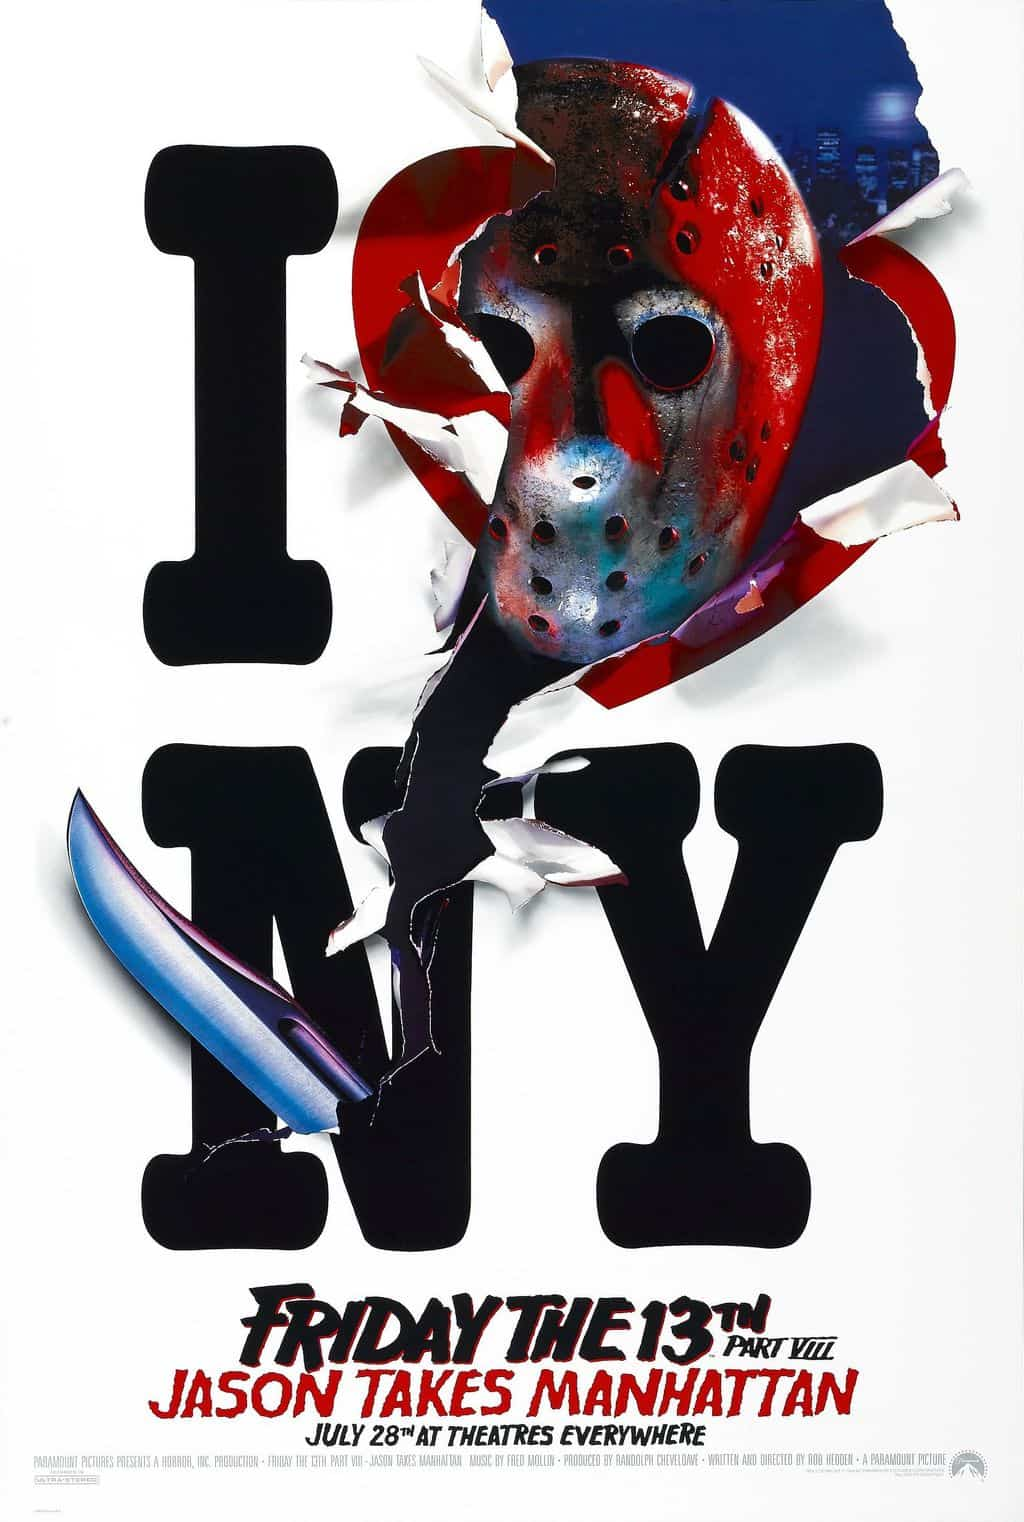 film reviews | movies | features | BRWC From Crystal Lake to Manhattan...